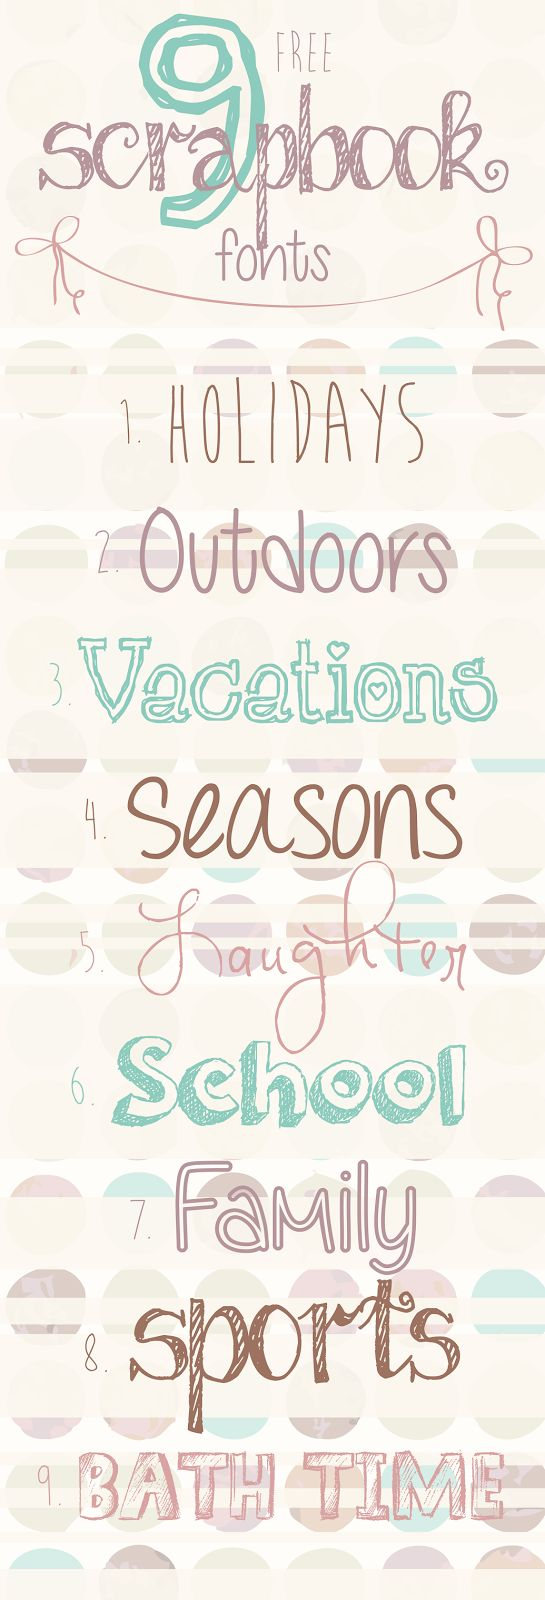 Designs By Miss Mandee: 9 Free Scrapbook Fonts